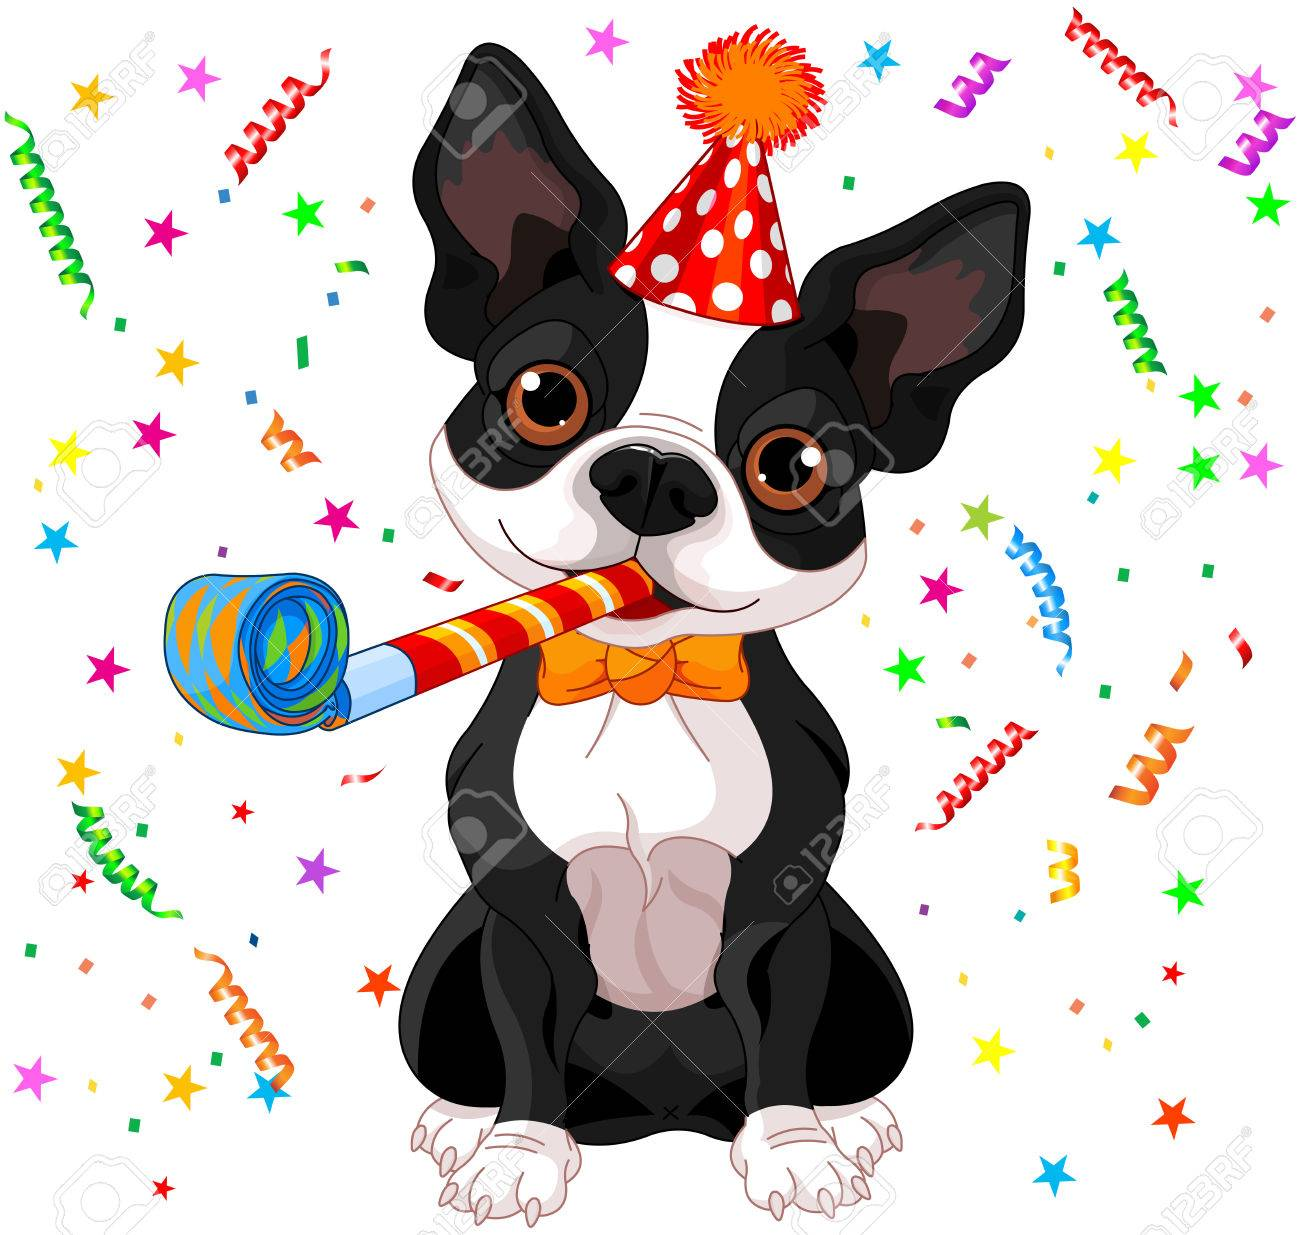 Gérer l'excitation 35588778-illustration-of-cute-boston-terrier-celebrating